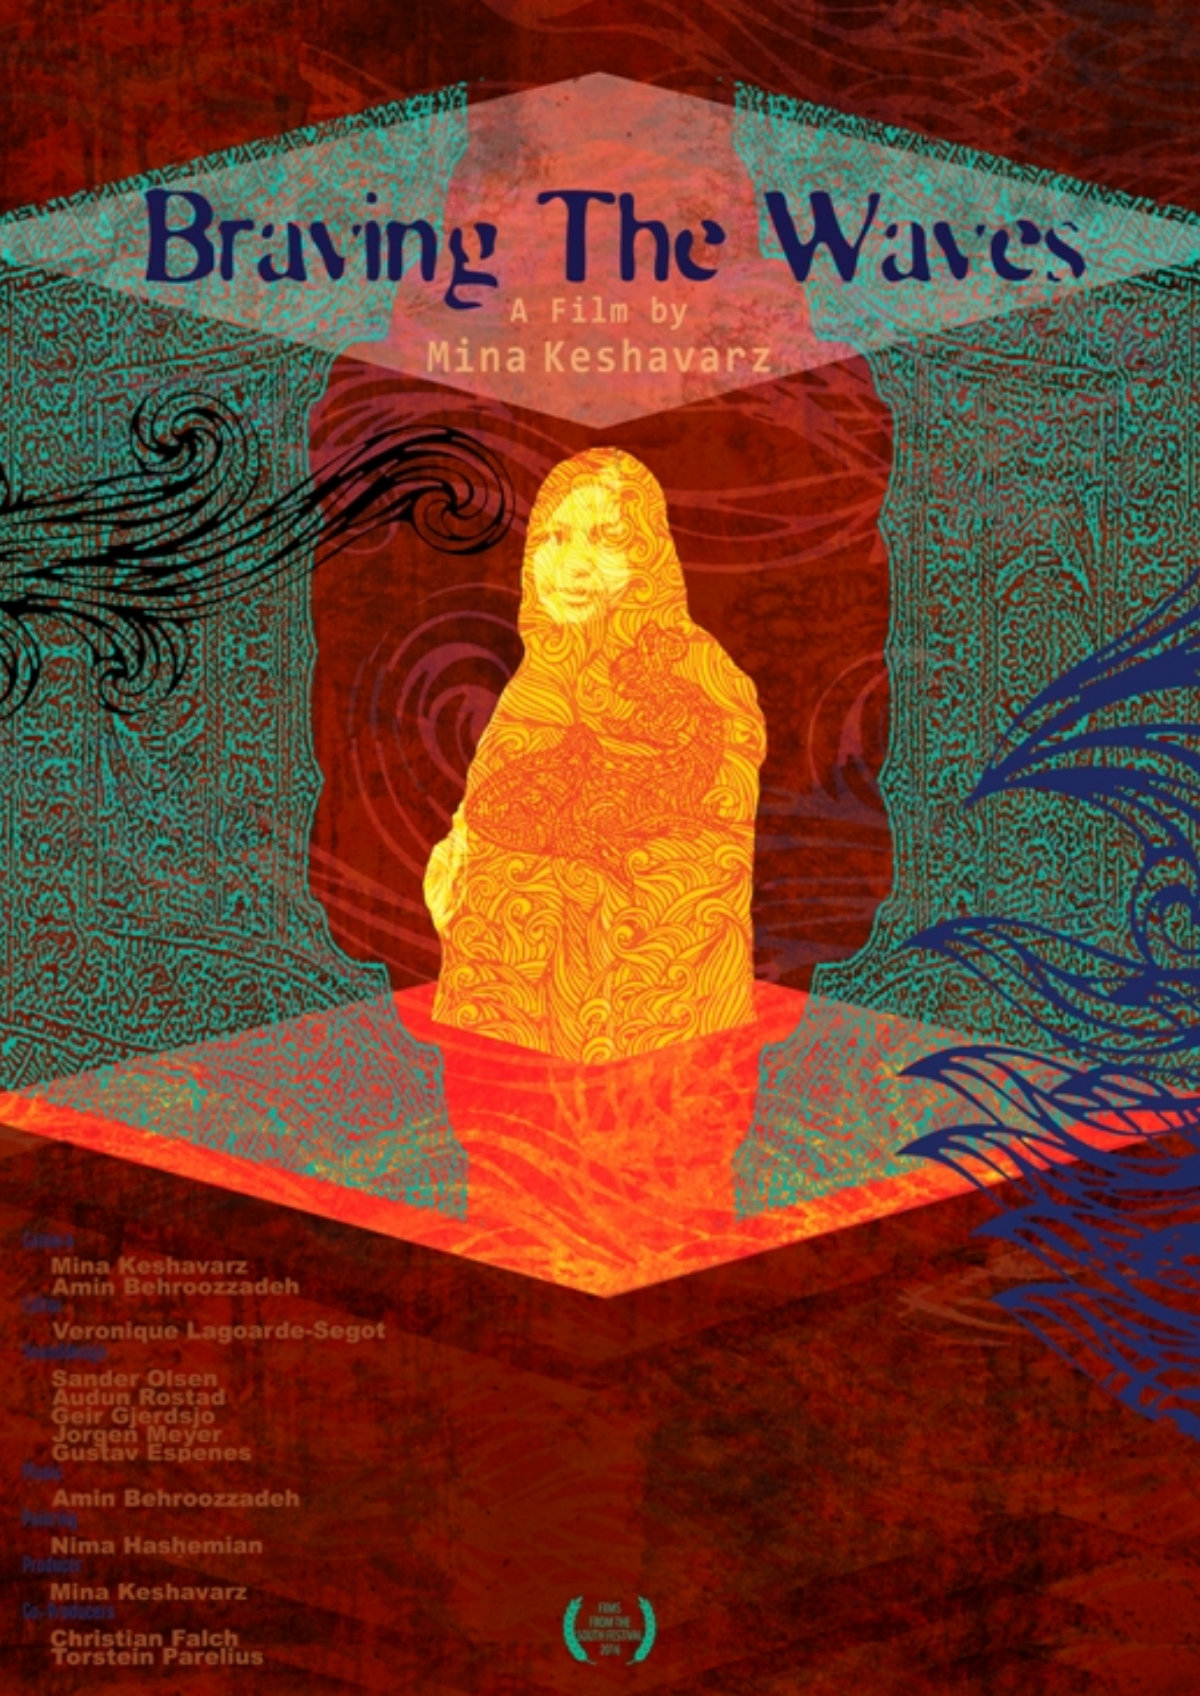 'Braving The Waves' movie poster